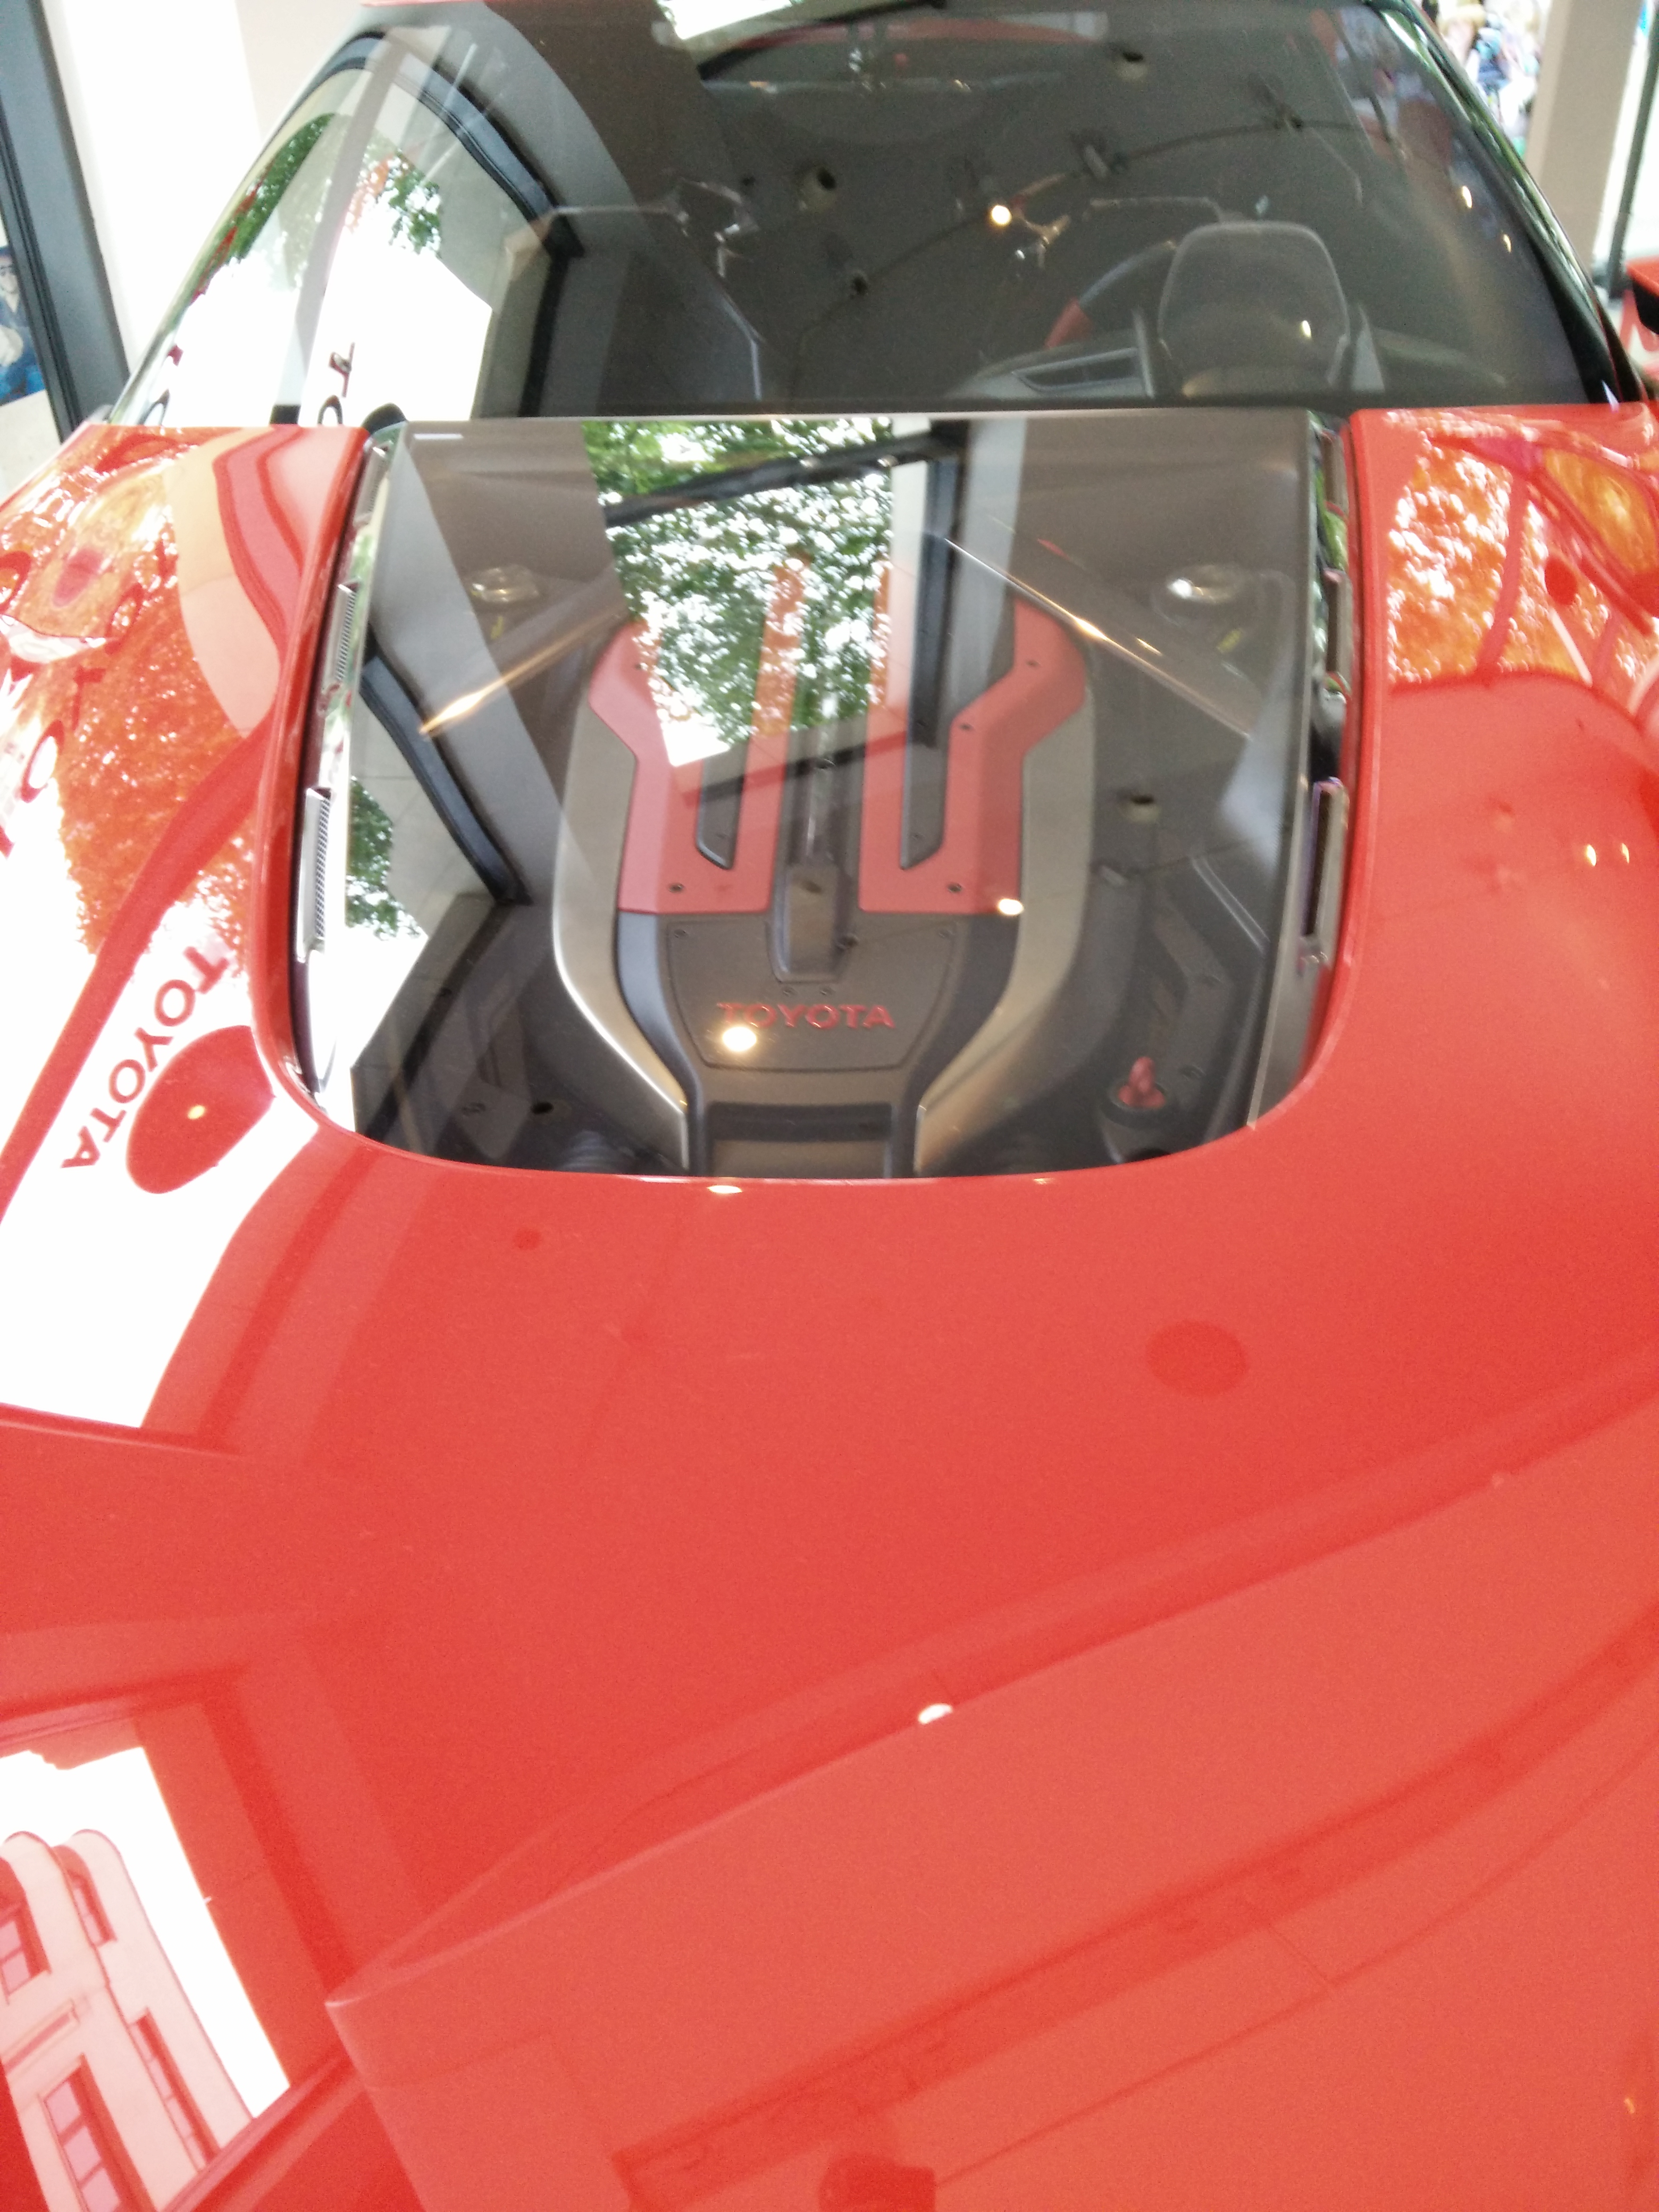 The Toyota Ft1 concept is exposed in Paris at the champs elysées